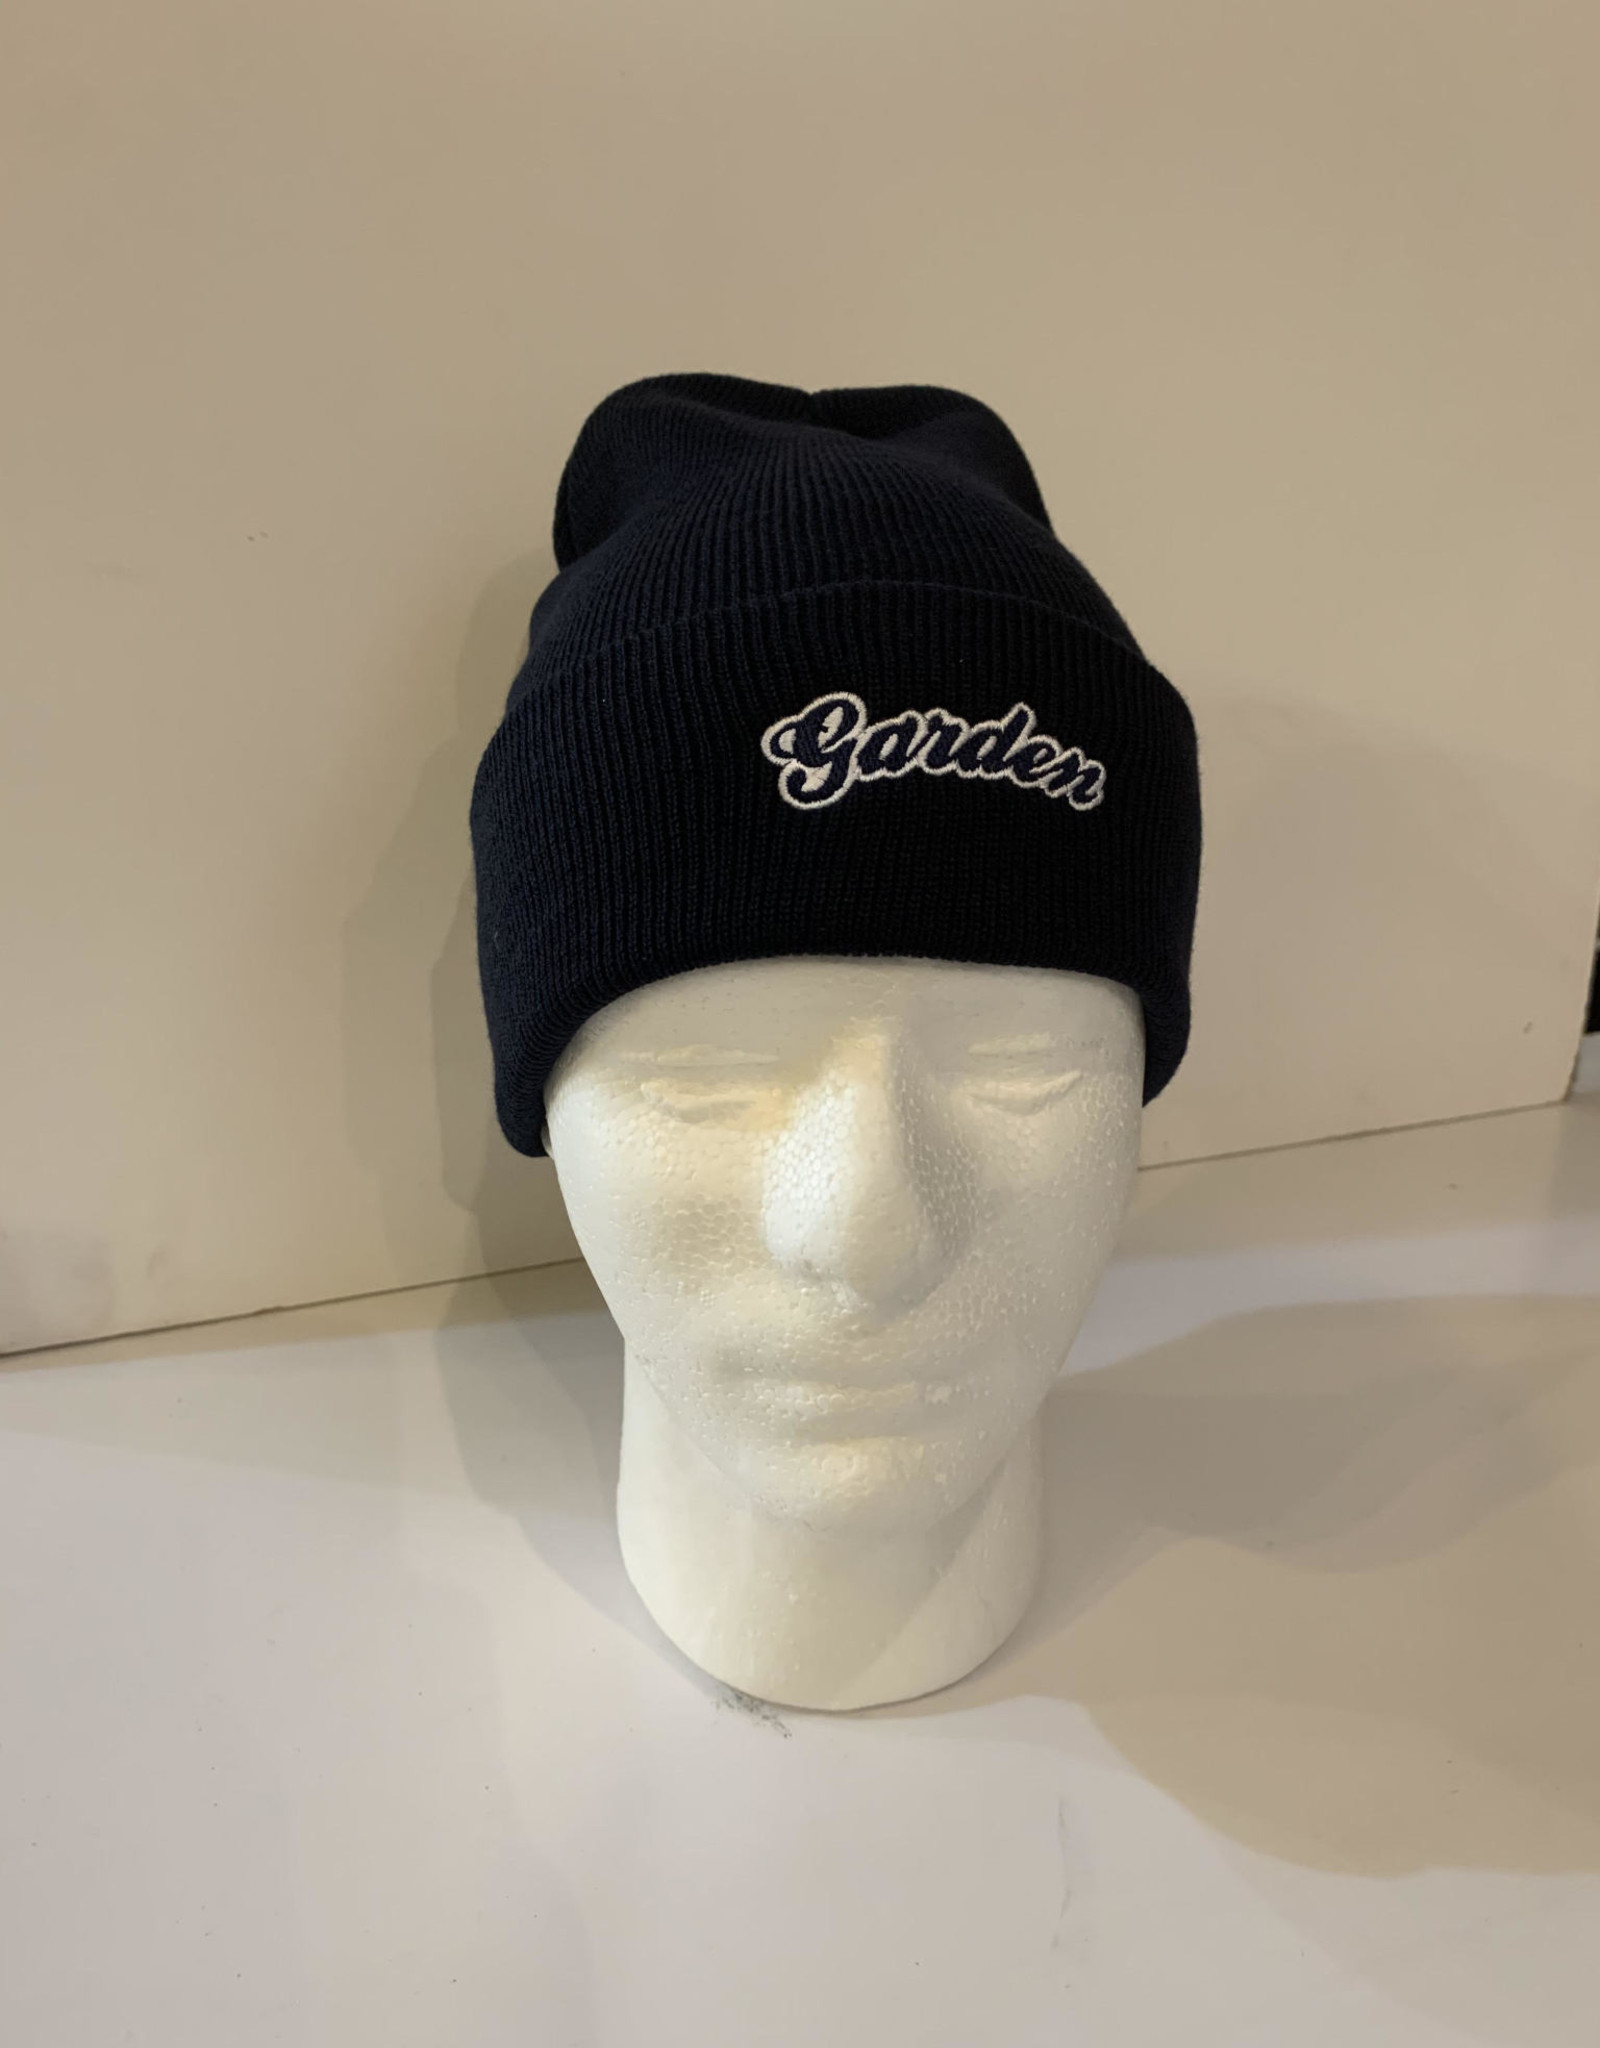 GARDEN GARDEN EMBROIDERED FOLD BEANIE NAVY W/WHITE